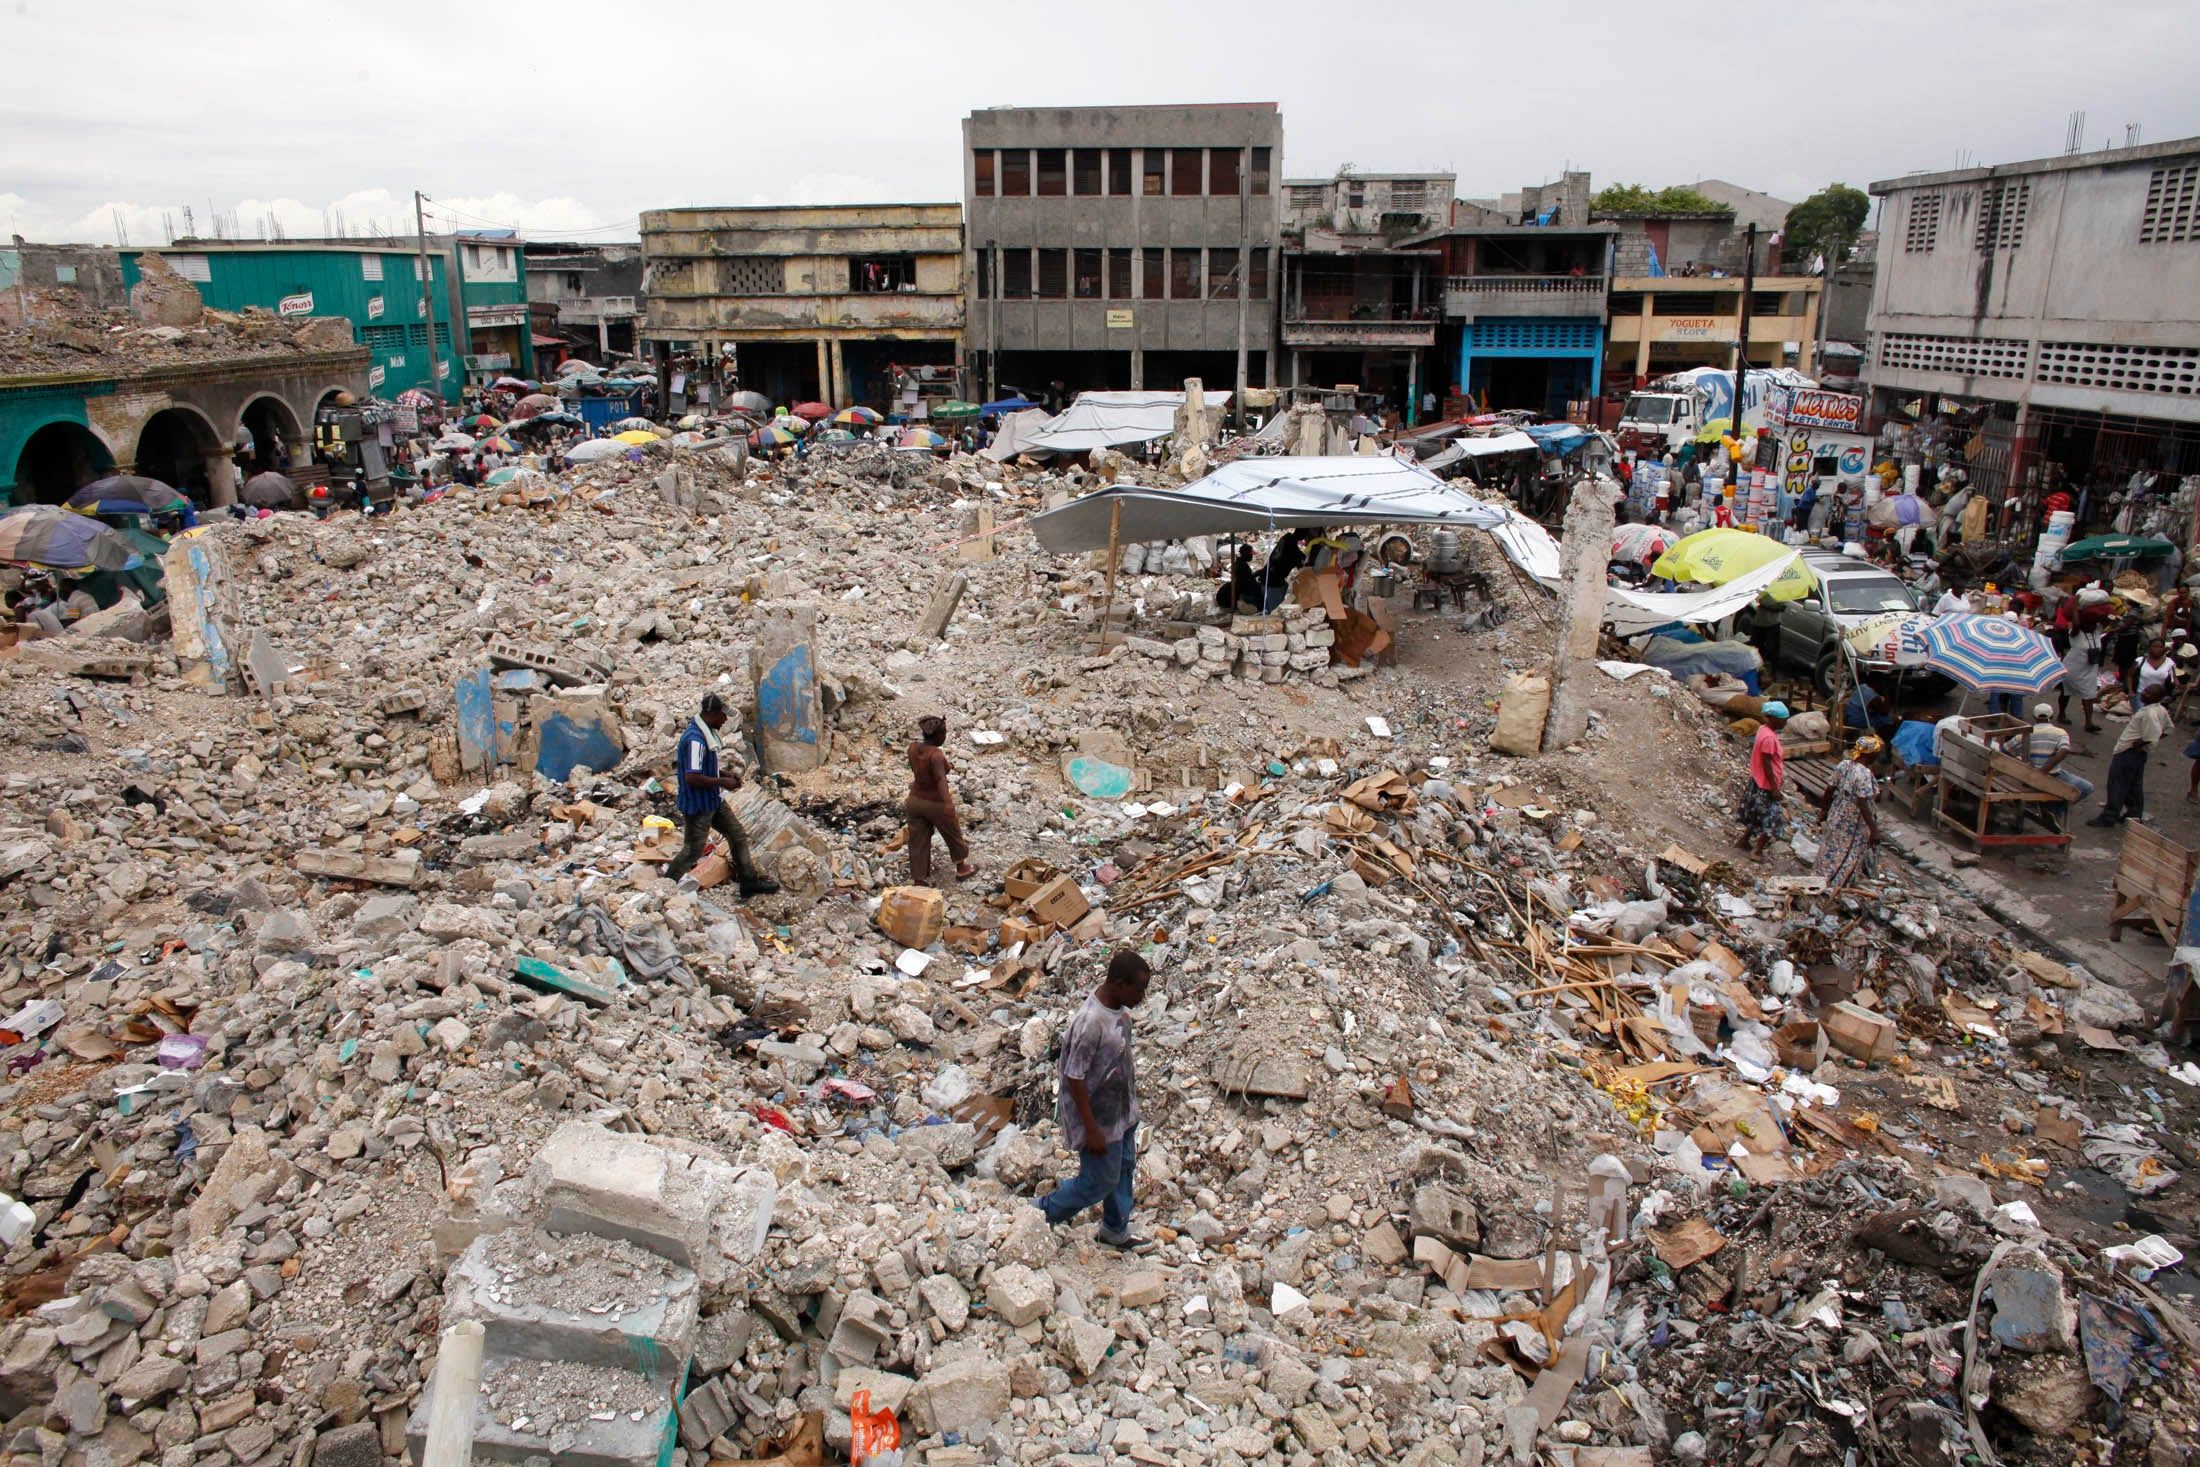 earth quake in haiti essay The essay should be about the earthquake in haiti in 2010 what kind of plate action caused it, what kind of seismic wave, property damage, and why haiti was hit so hard and the dominican republic was not seeing as though they are both on the same small island.